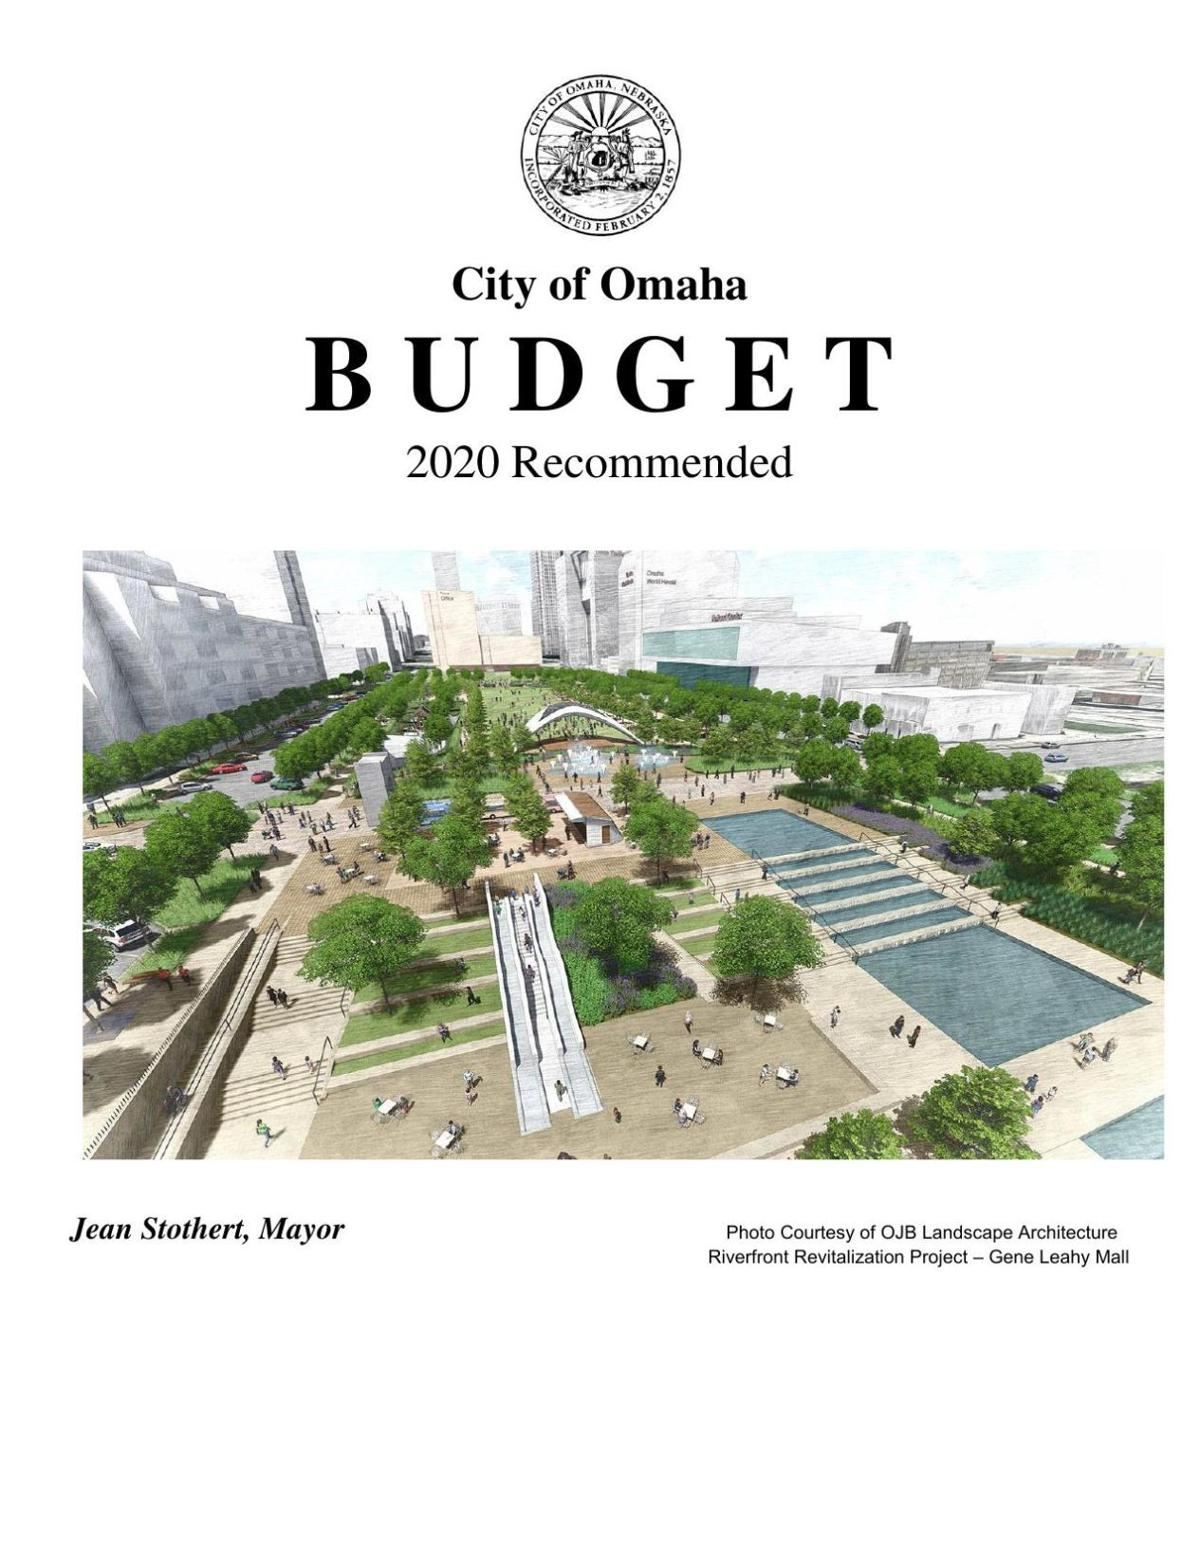 Omaha 2020 recommended budget